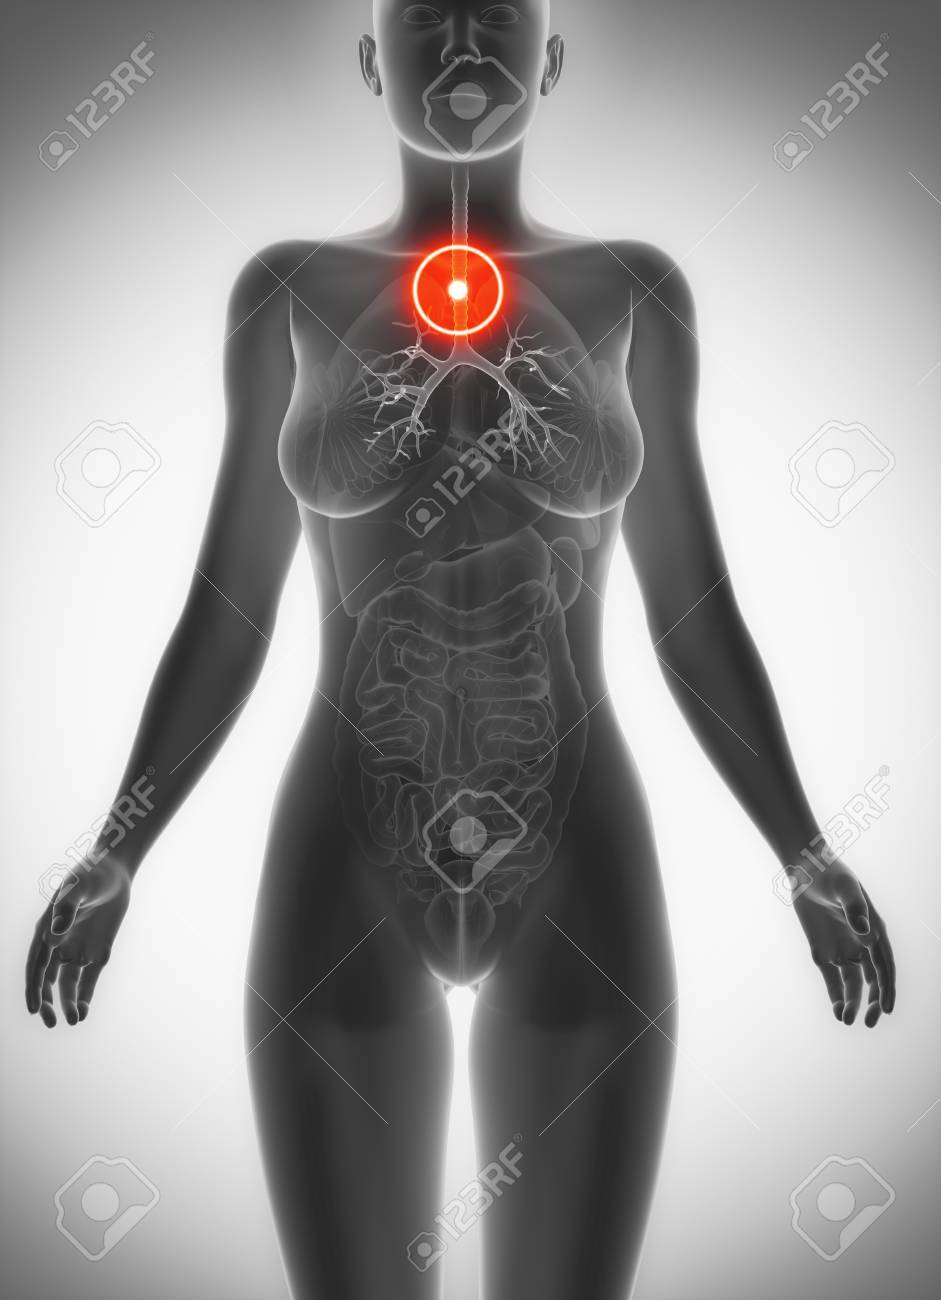 Trachea Anatomy Female Pain Concept Stock Photo Picture And Royalty